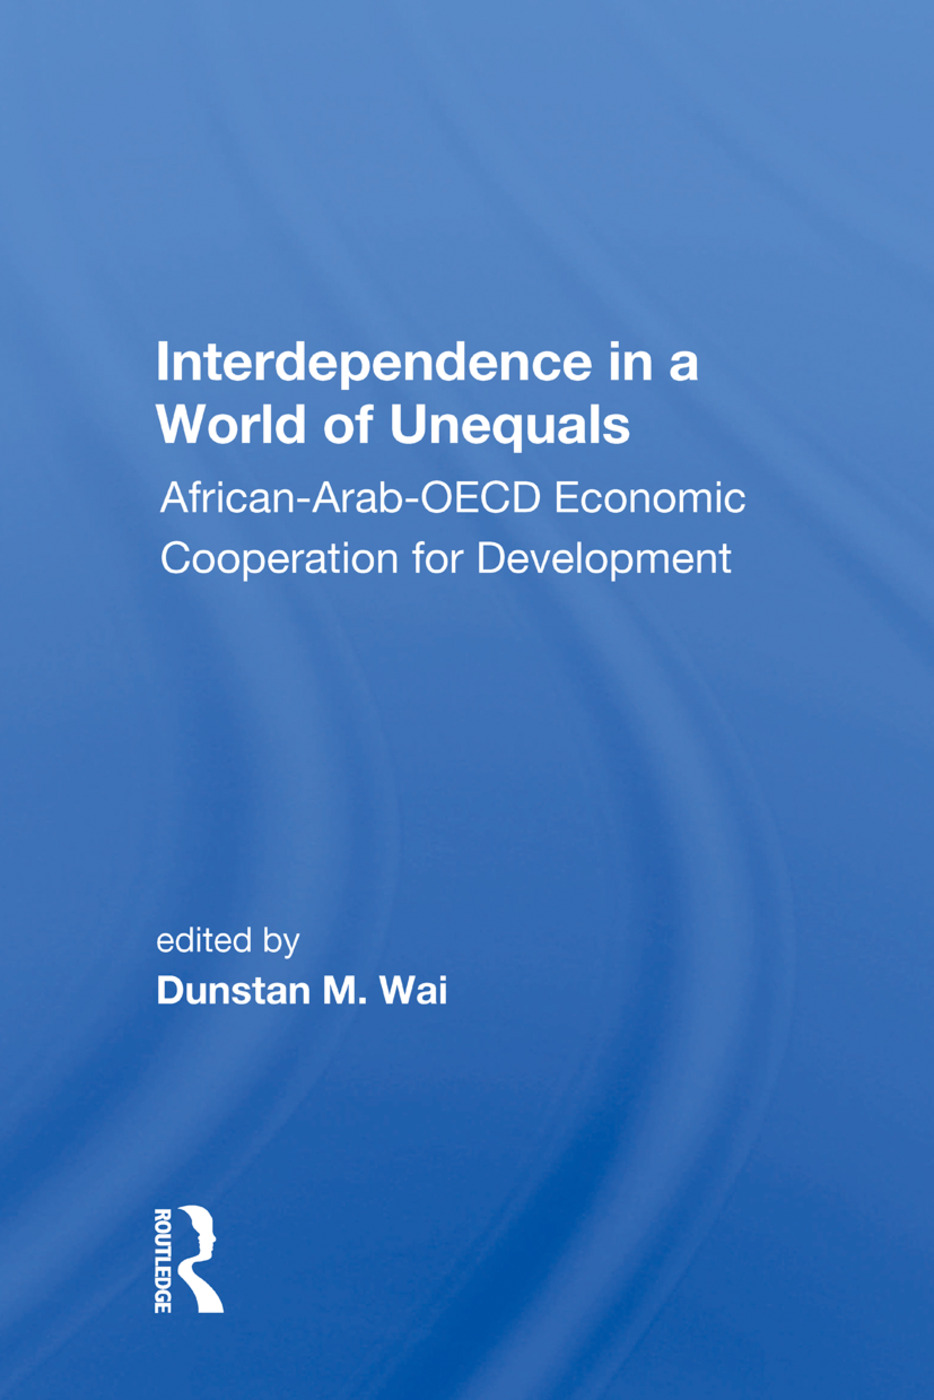 Interdependence in a World of Unequals